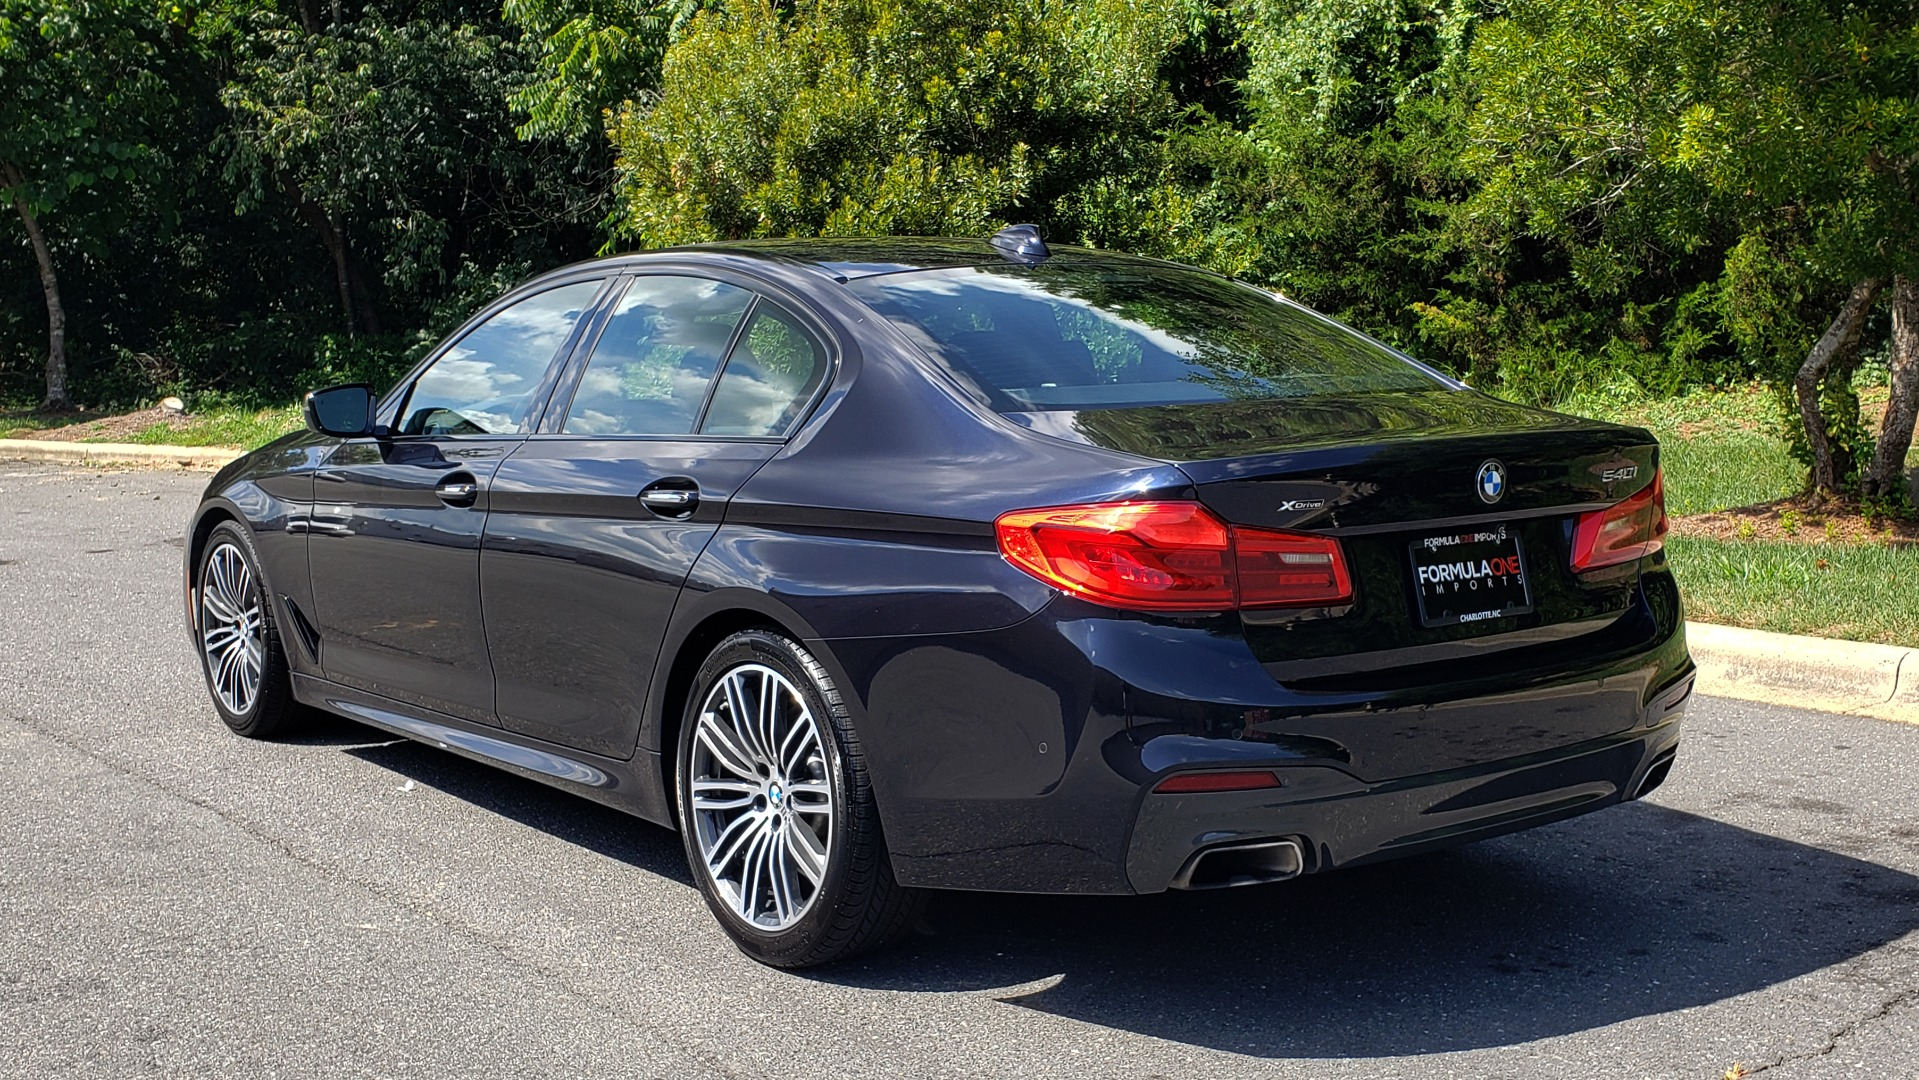 Used 2017 BMW 5 SERIES 540I XDRIVE PREMIUM / NAV / DRVR ASST PLUS / CLD WTHR / SUNROOF / REARVIEW for sale Sold at Formula Imports in Charlotte NC 28227 3